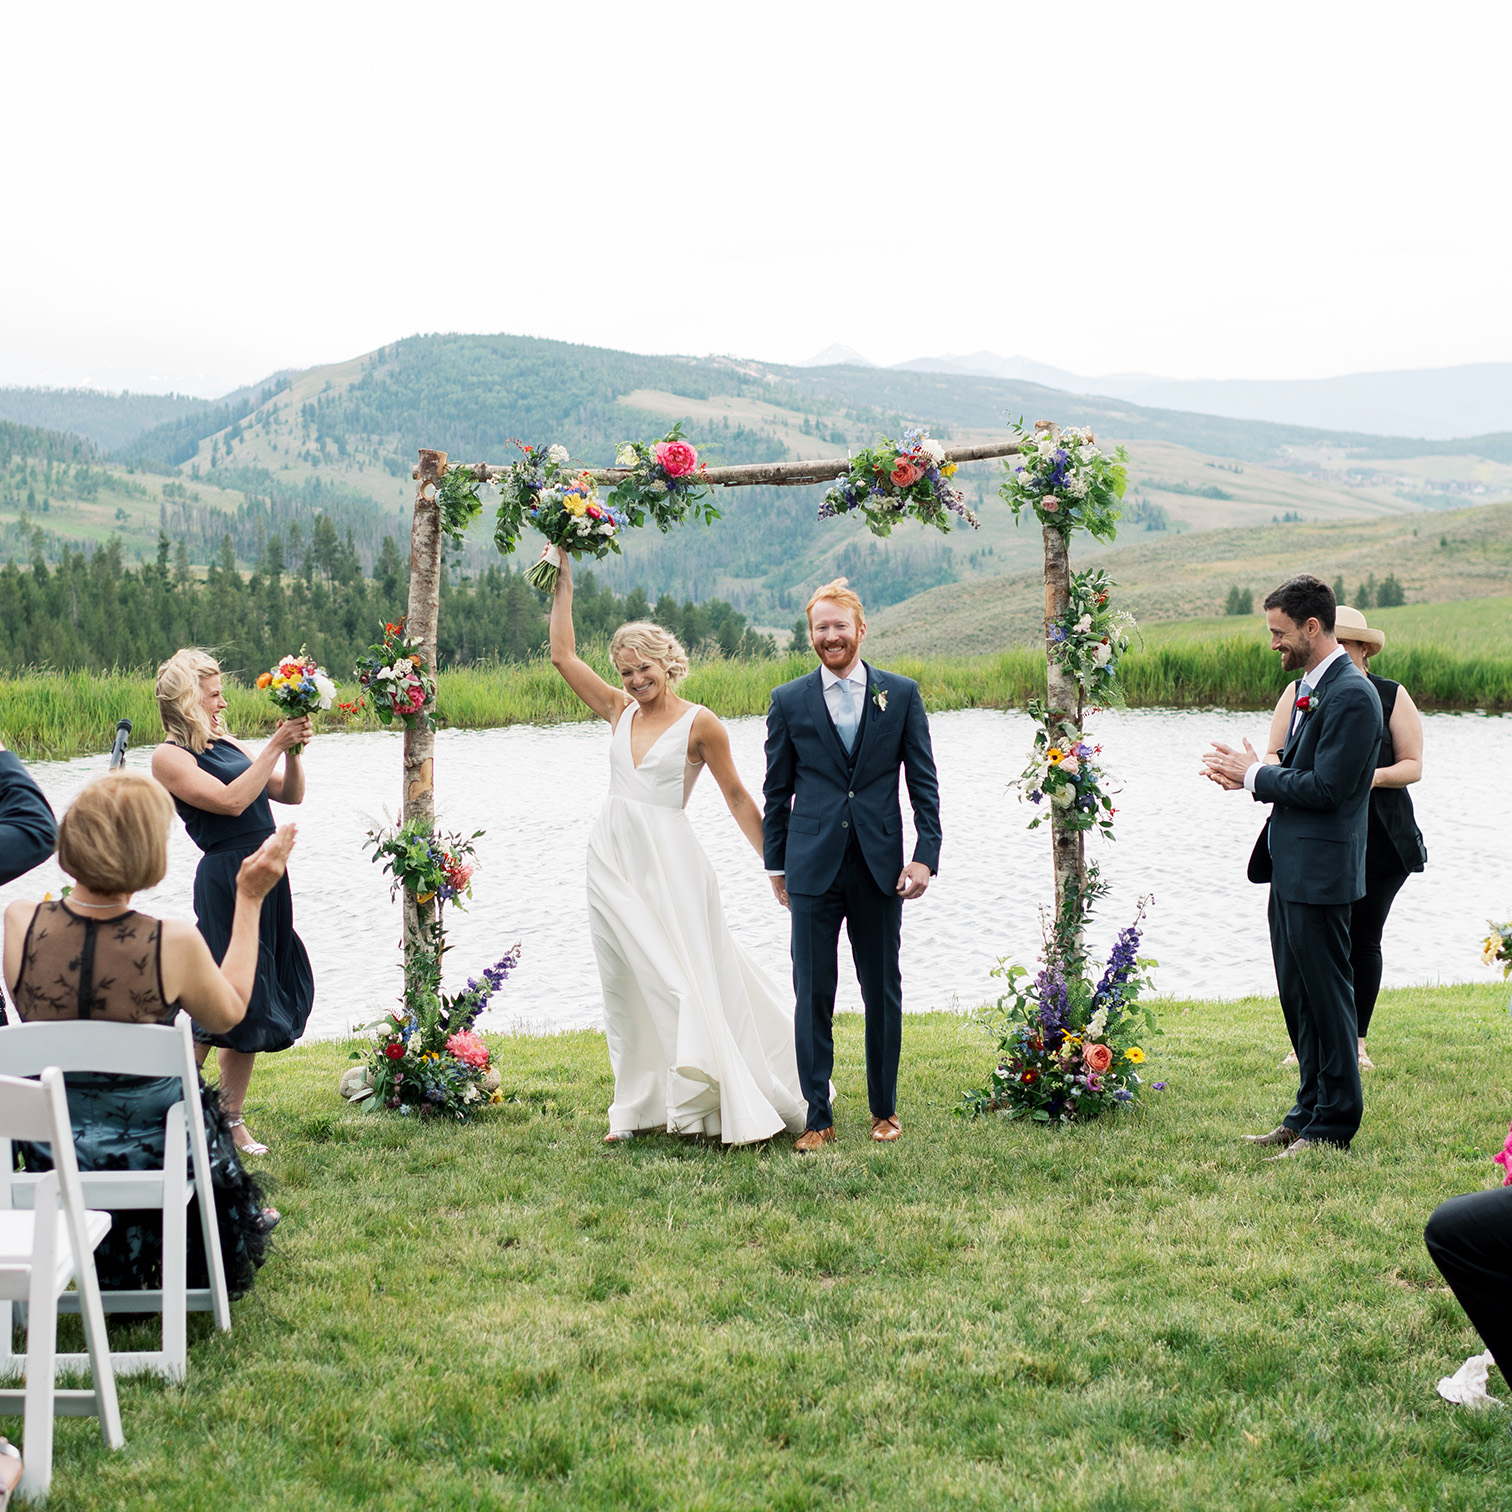 Colorado Destination Weddings, Mountain Wedding Ceremony